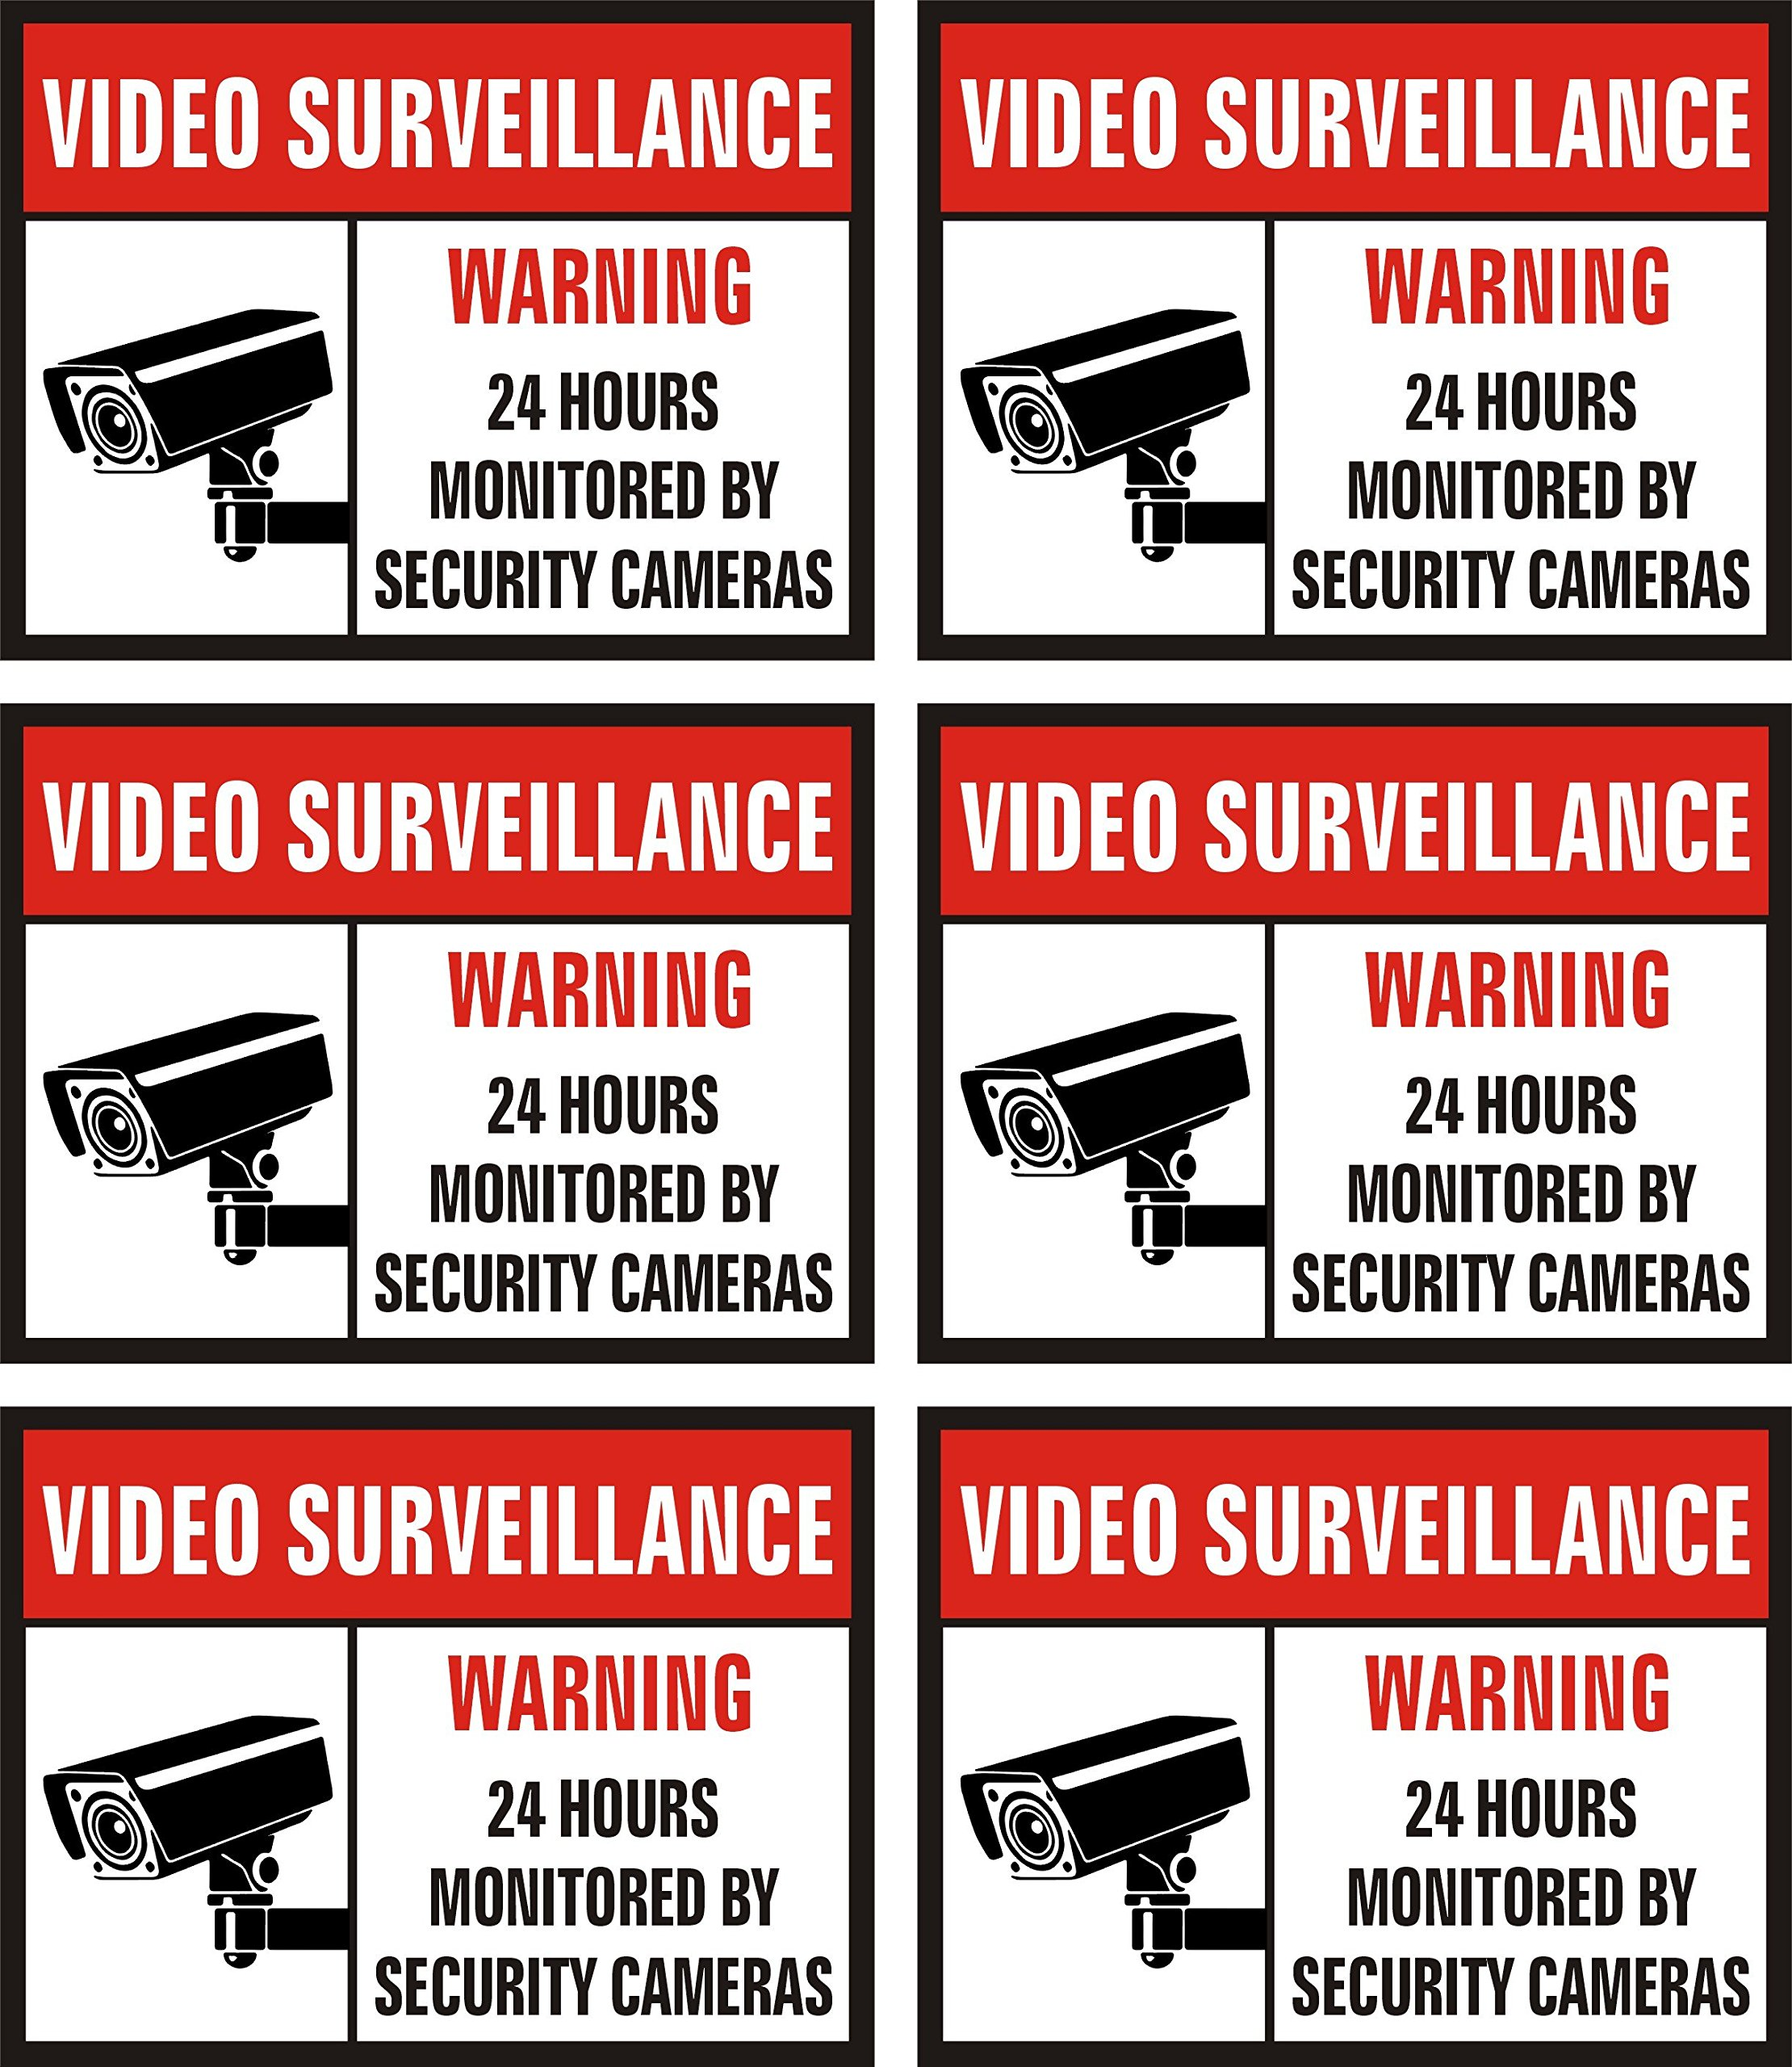 Jancosta 24 Hour Video Surveillance Sticker Decals, Security Warning Sign for Business and Home, Indoor and Outdoor (3x4'' Pack of 6)